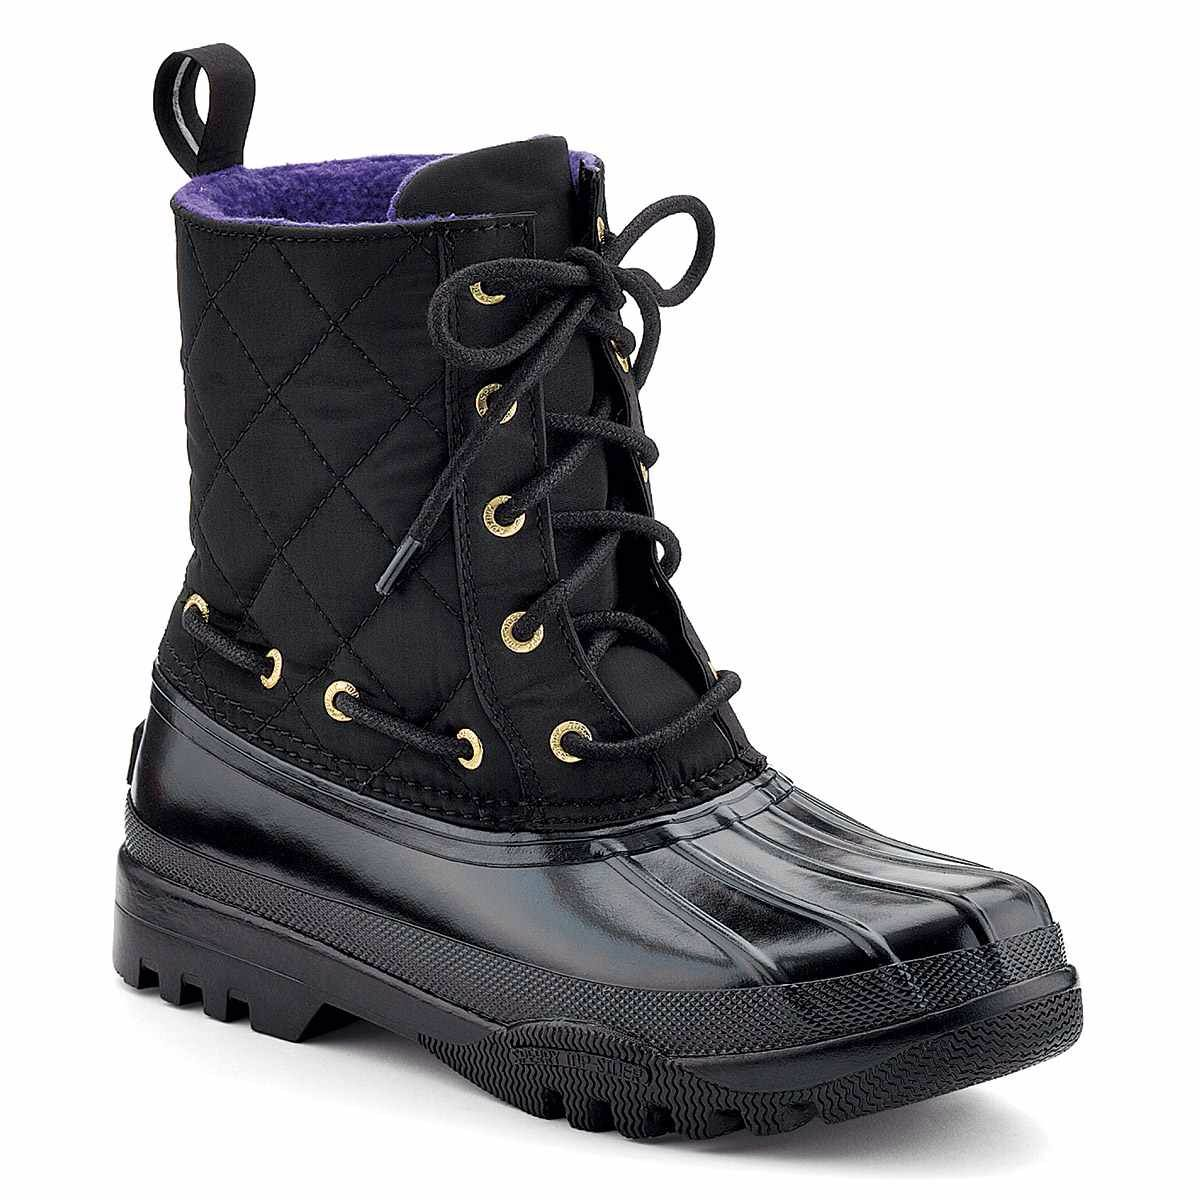 Simple Sperry Womens Saltwater Misty Plaid Duck Boots In BlackTan Stay Dry And Keep Exploring The Saltwater Misty Plaid Duck Boot Features A Premium Leather Shaft With Matte Rubber Duck Shell, Cozy Microfleeced Lining For Added